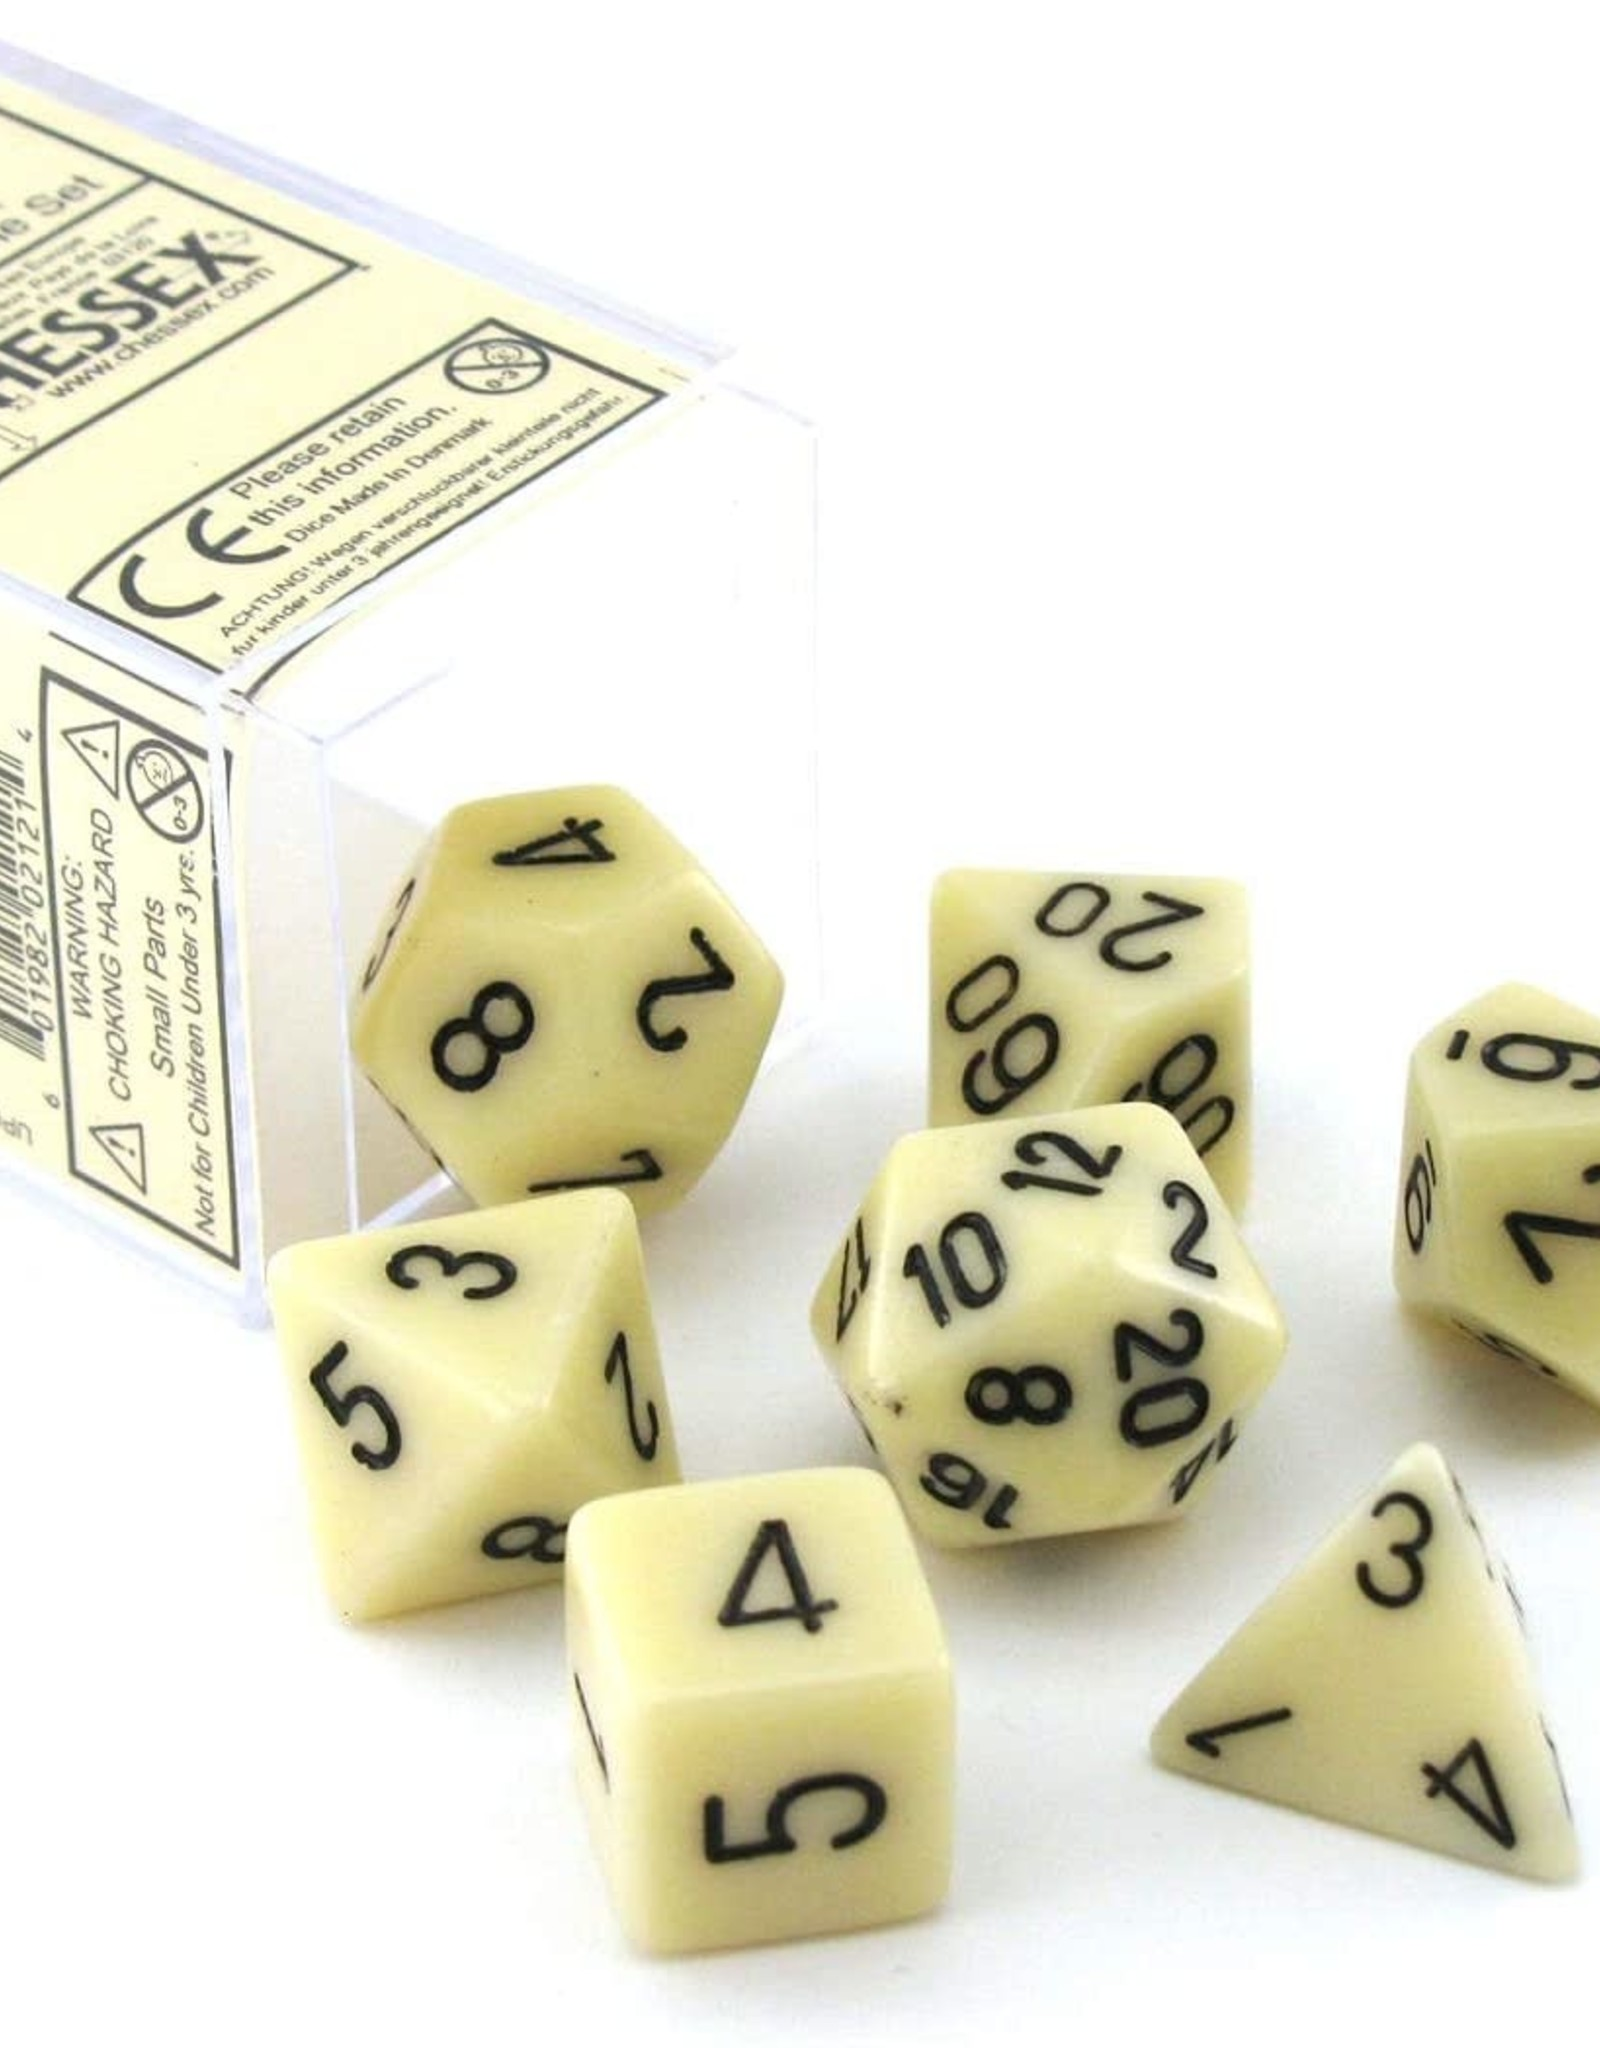 Chessex Opaque Poly 7 set: Ivory w/ Black